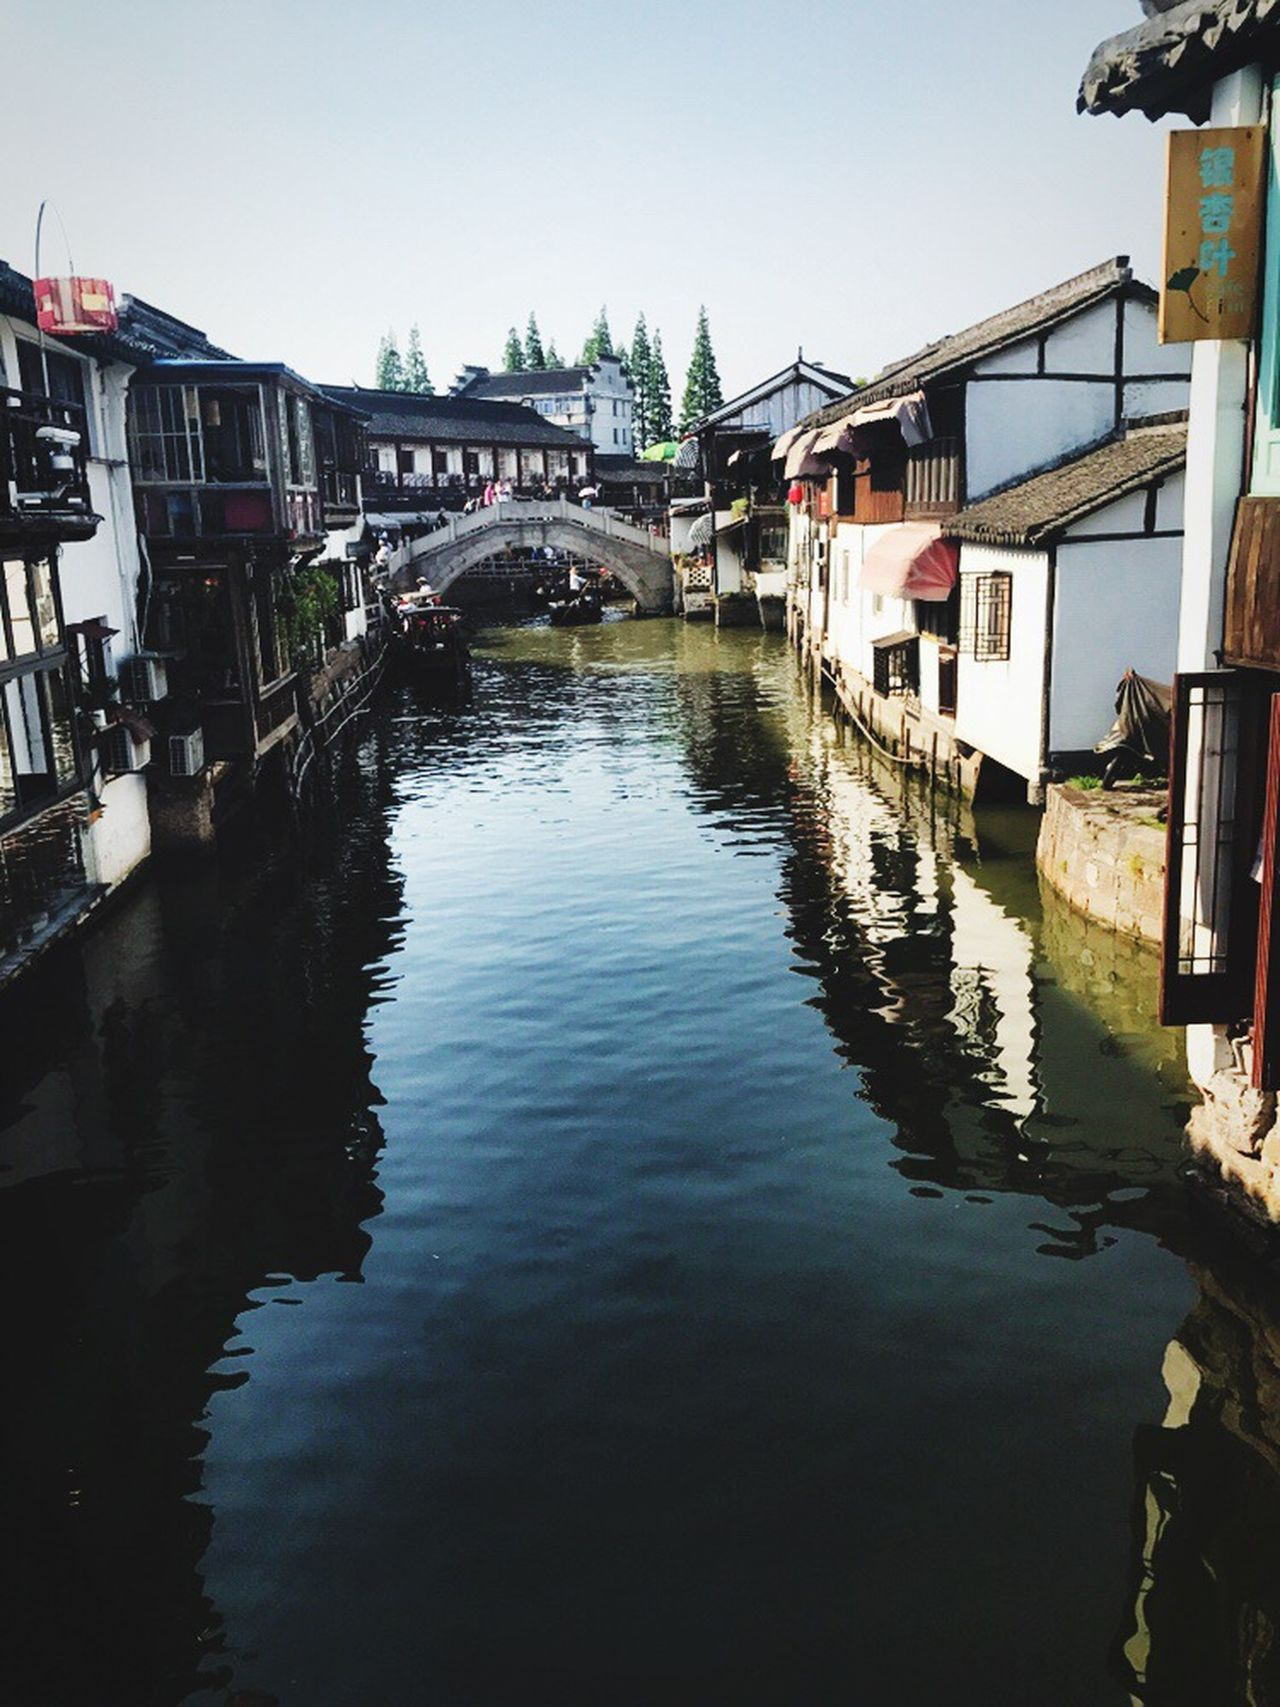 Building Exterior Architecture Built Structure Reflection Water House Day Waterfront Residential Building Canal Outdoors Old Town Rippled Clear Sky No People Nautical Vessel Nature Sky City Zhujiang River